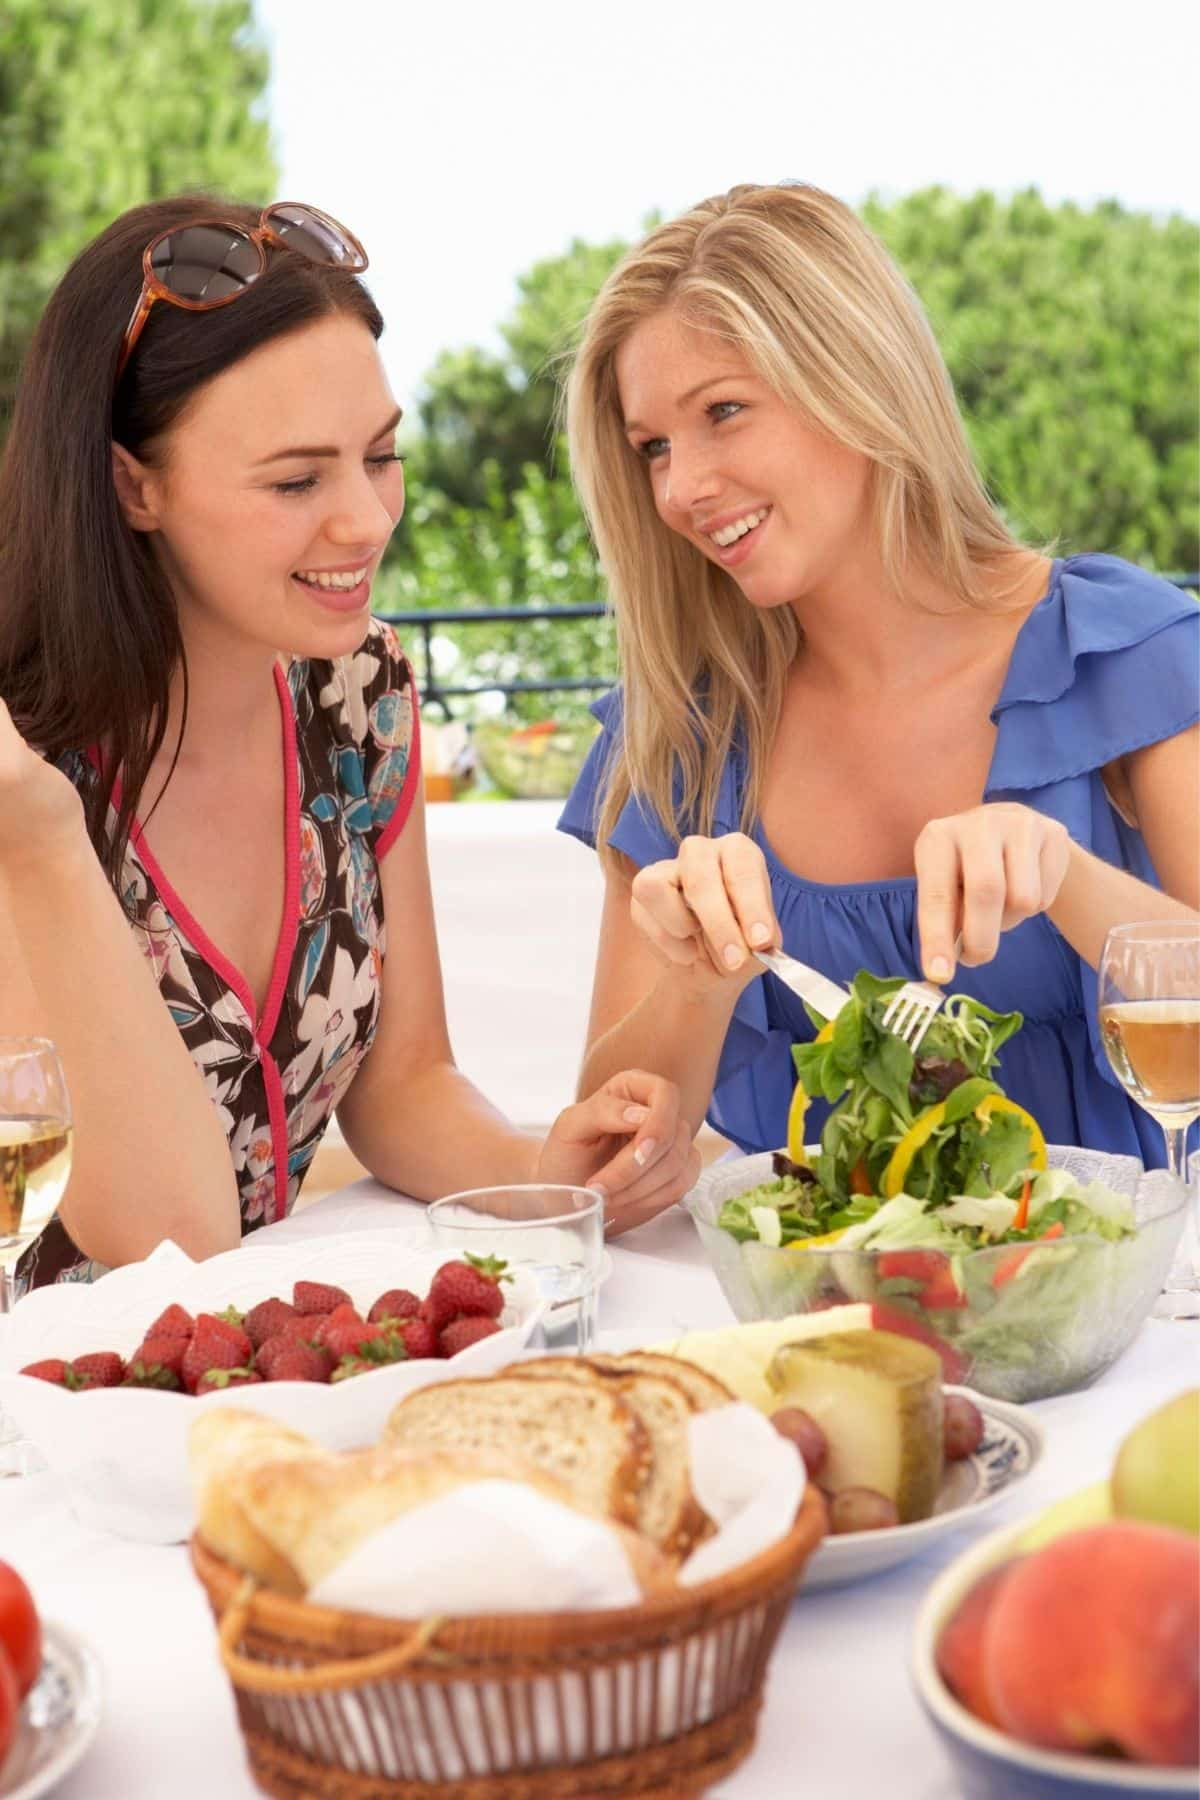 two women eating a salad